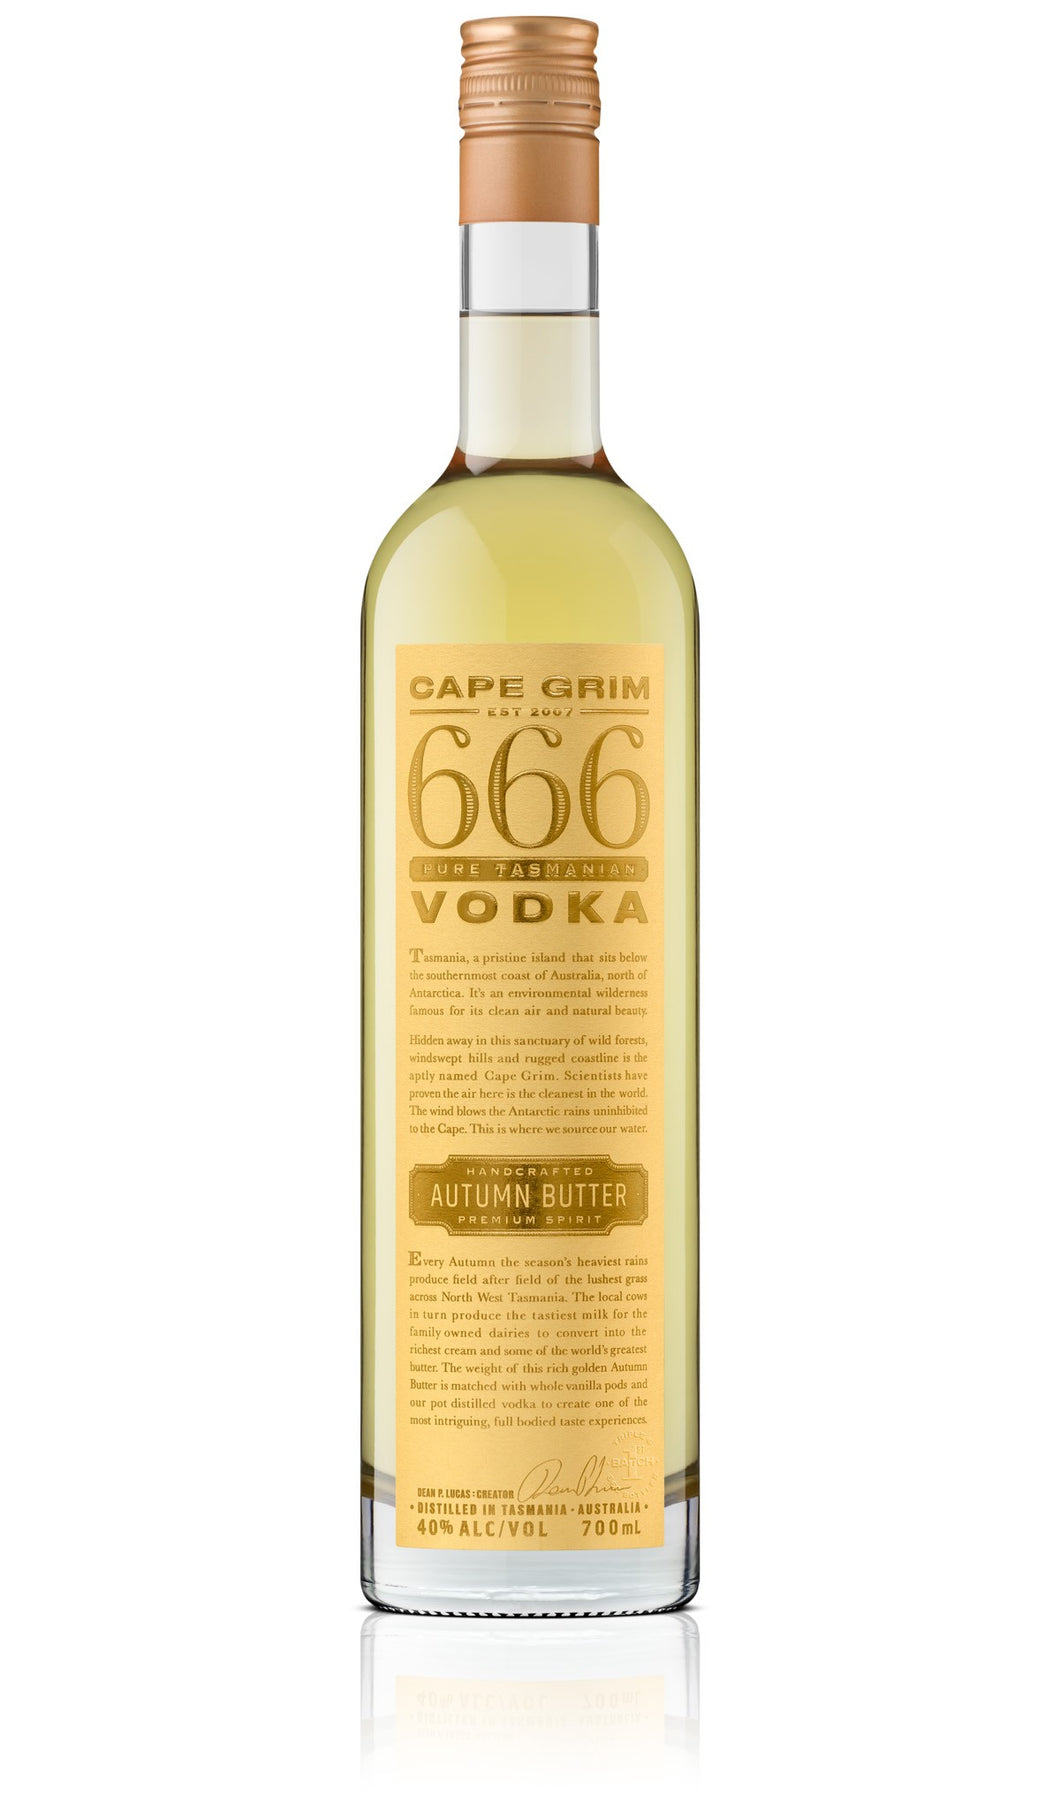 Cape Grim Autumn Butter Vodka 40% 700ml